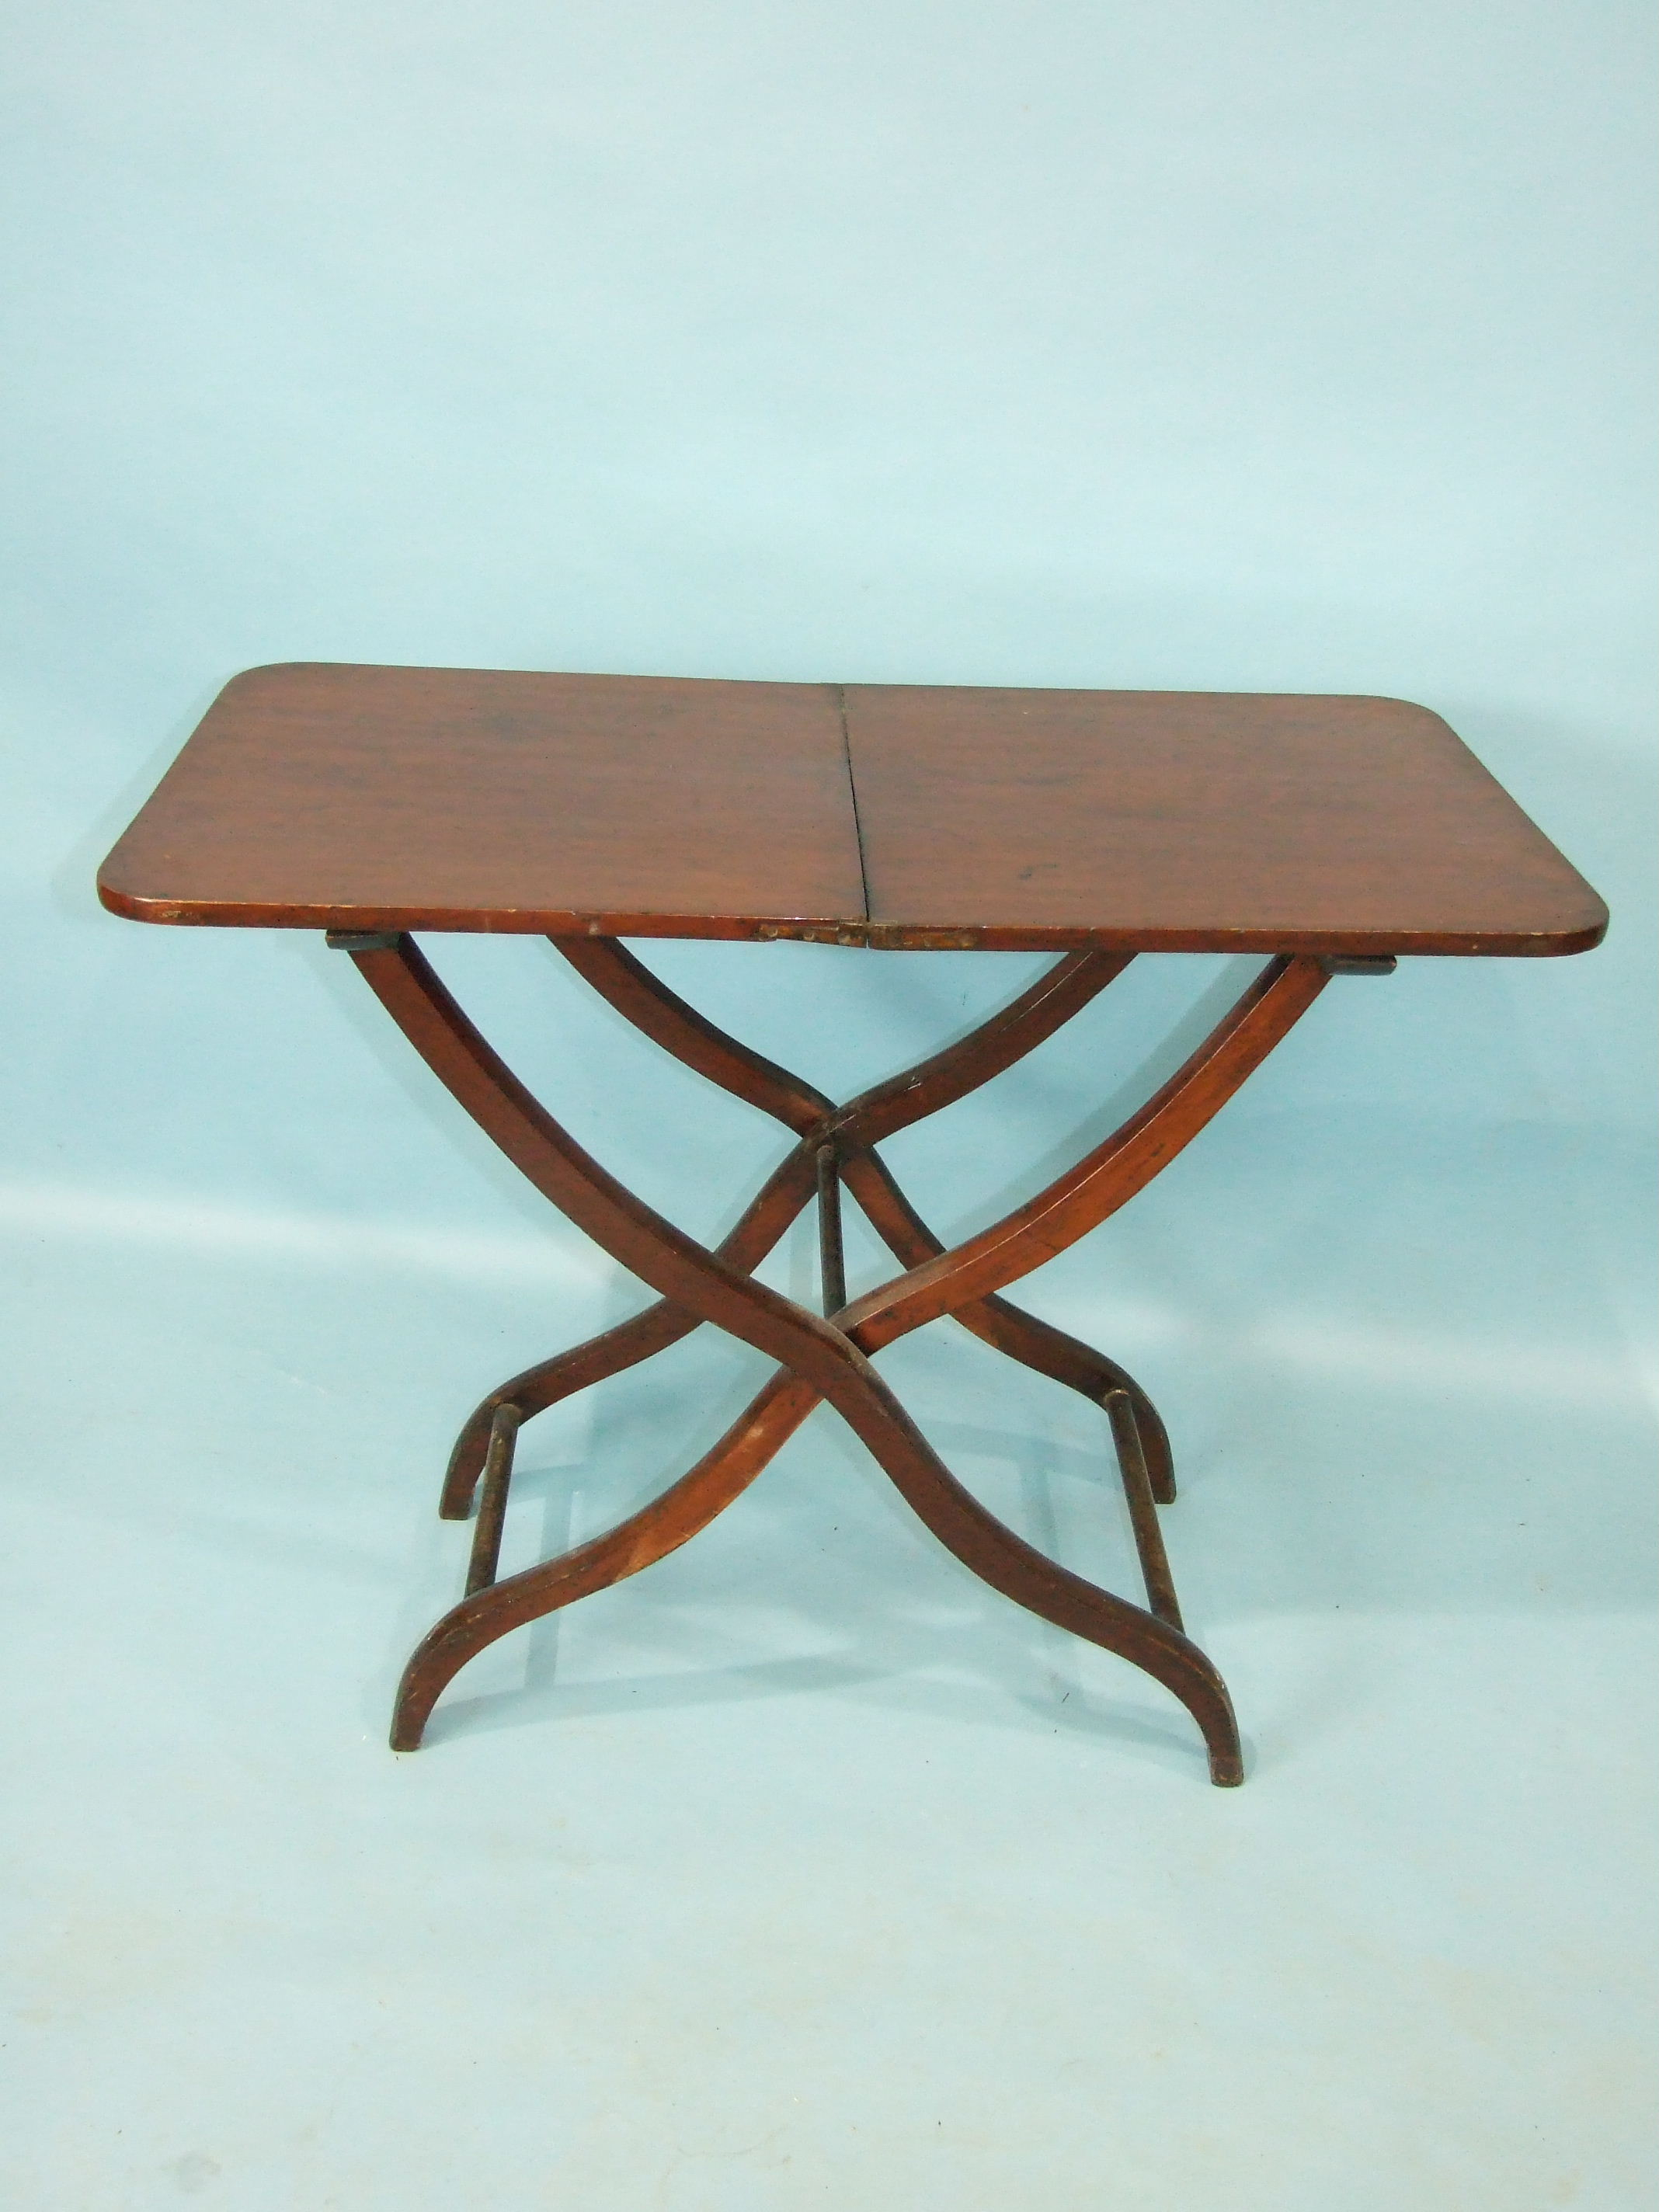 A 19th century mahogany hunting table, the rectangular folding top with flush hinges, on - Image 3 of 3